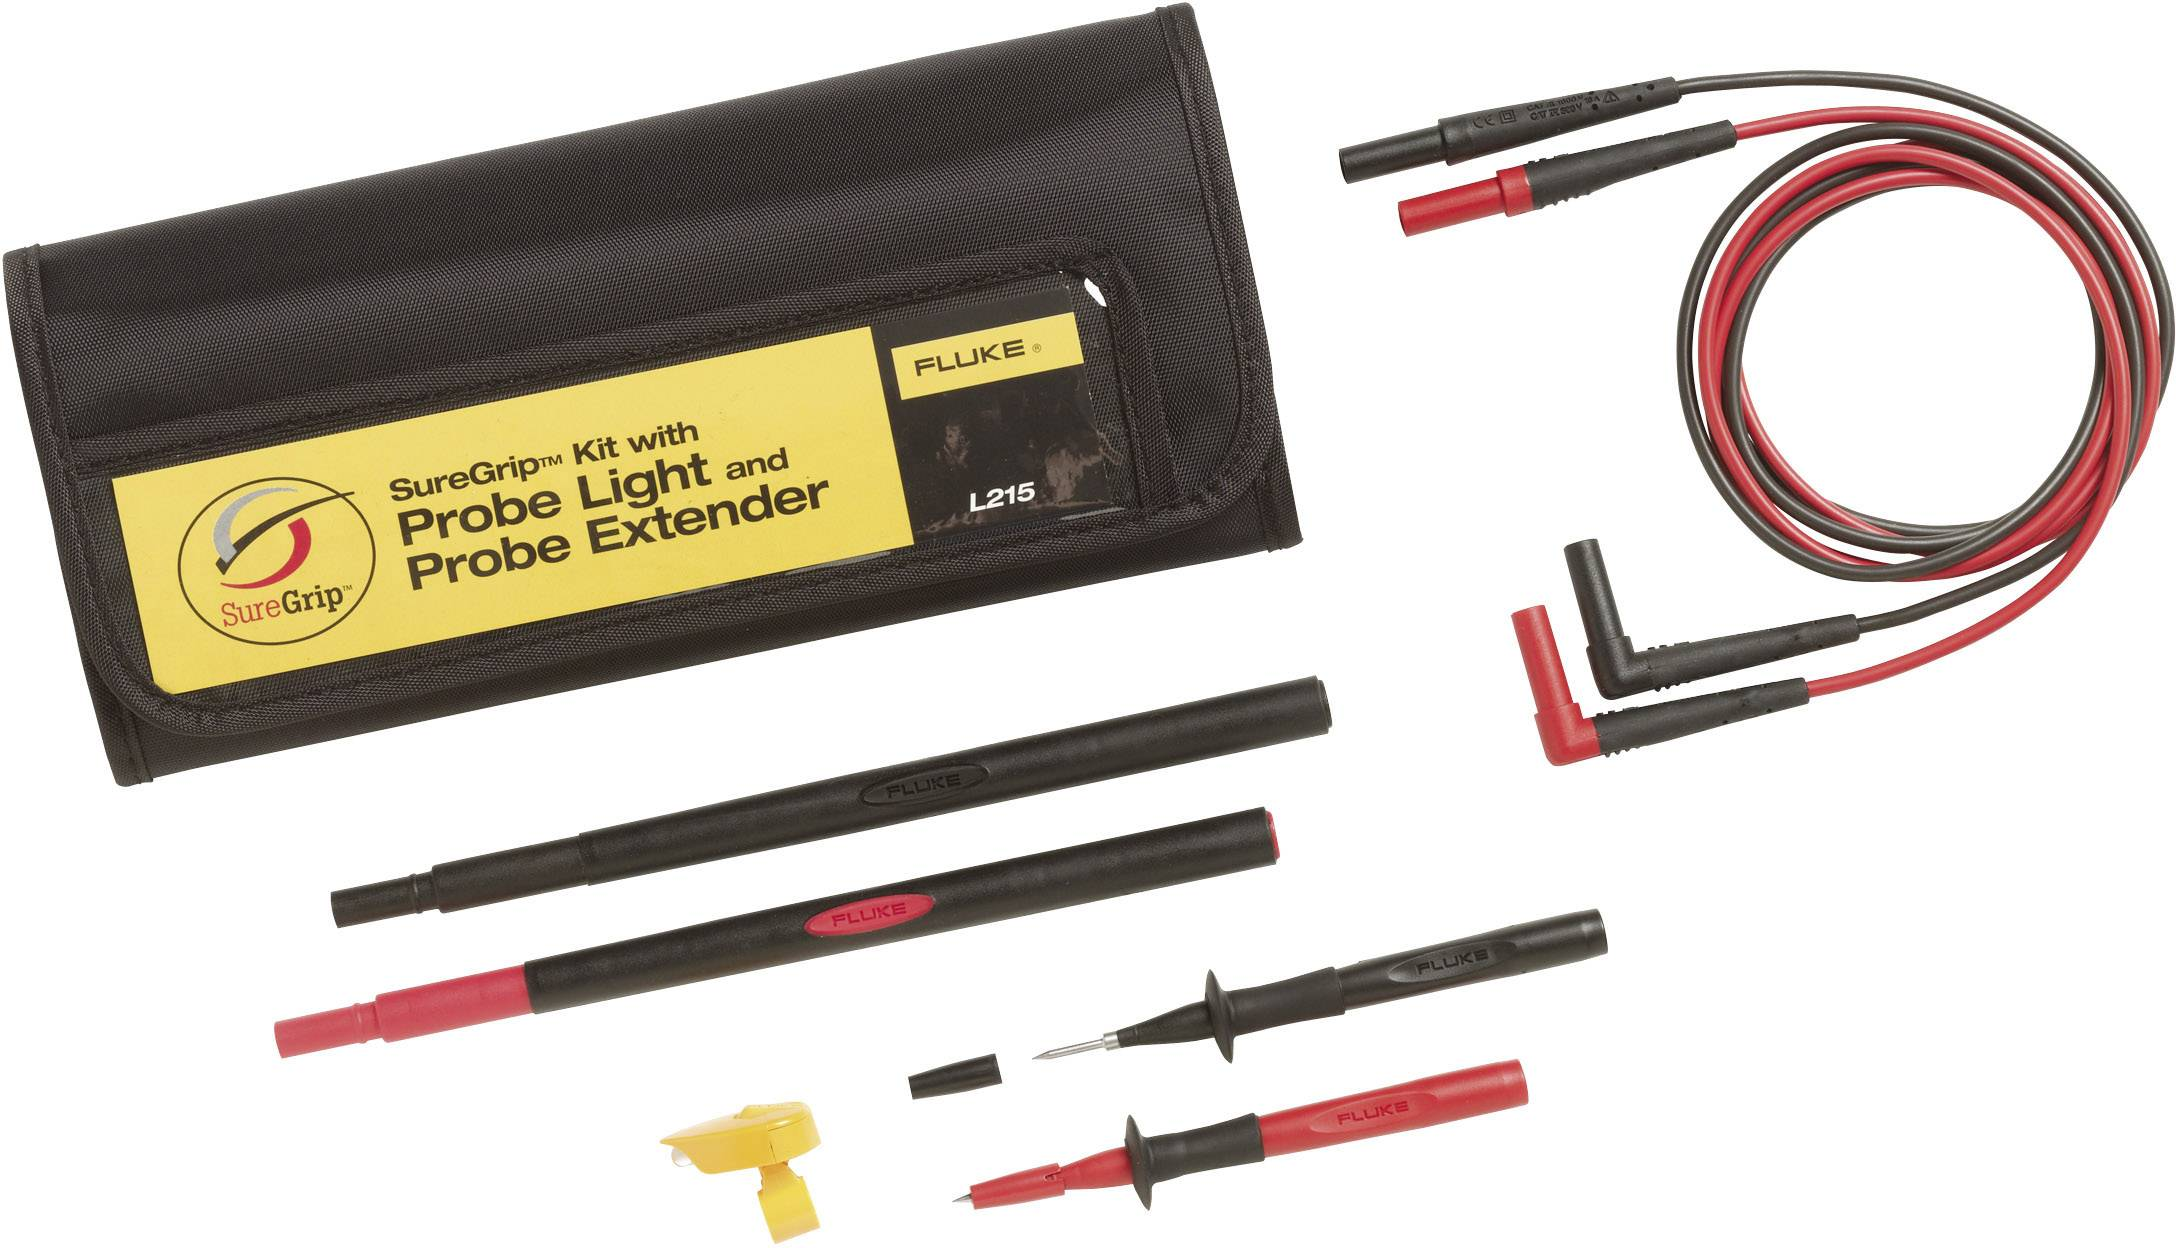 SureGrip Kit with Probe Light and Probe Extender